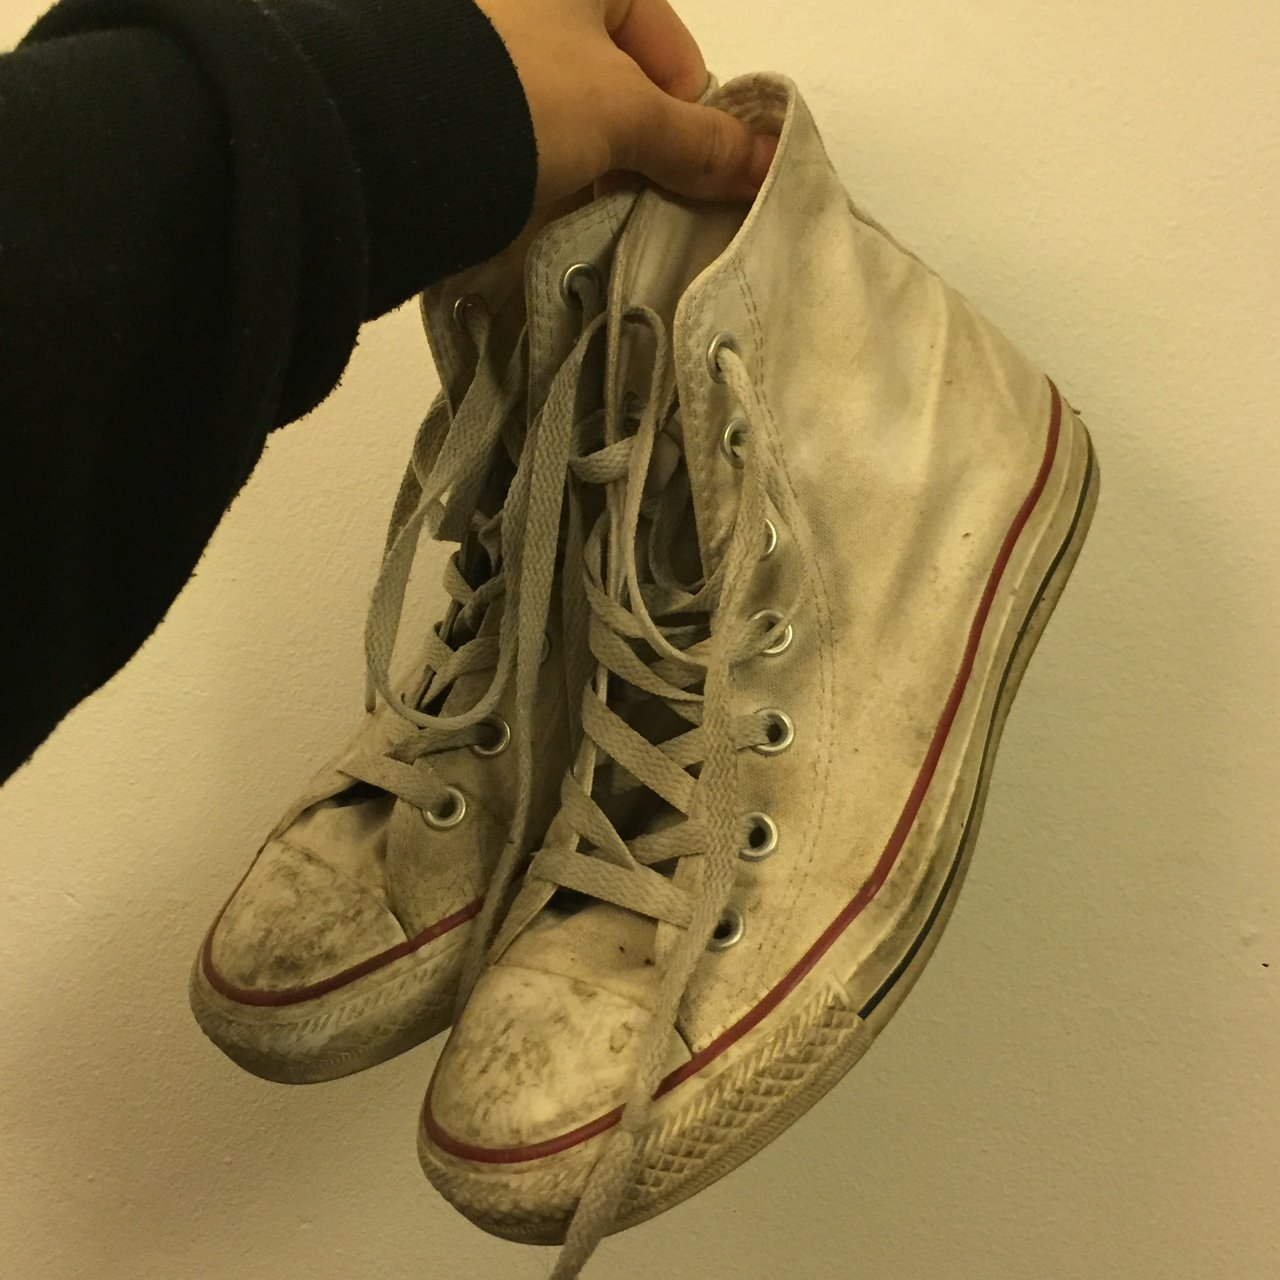 ea26f0a12bc6 Used Worn Out White Converse All Star Sneakers. Size 8 in 6 - Depop